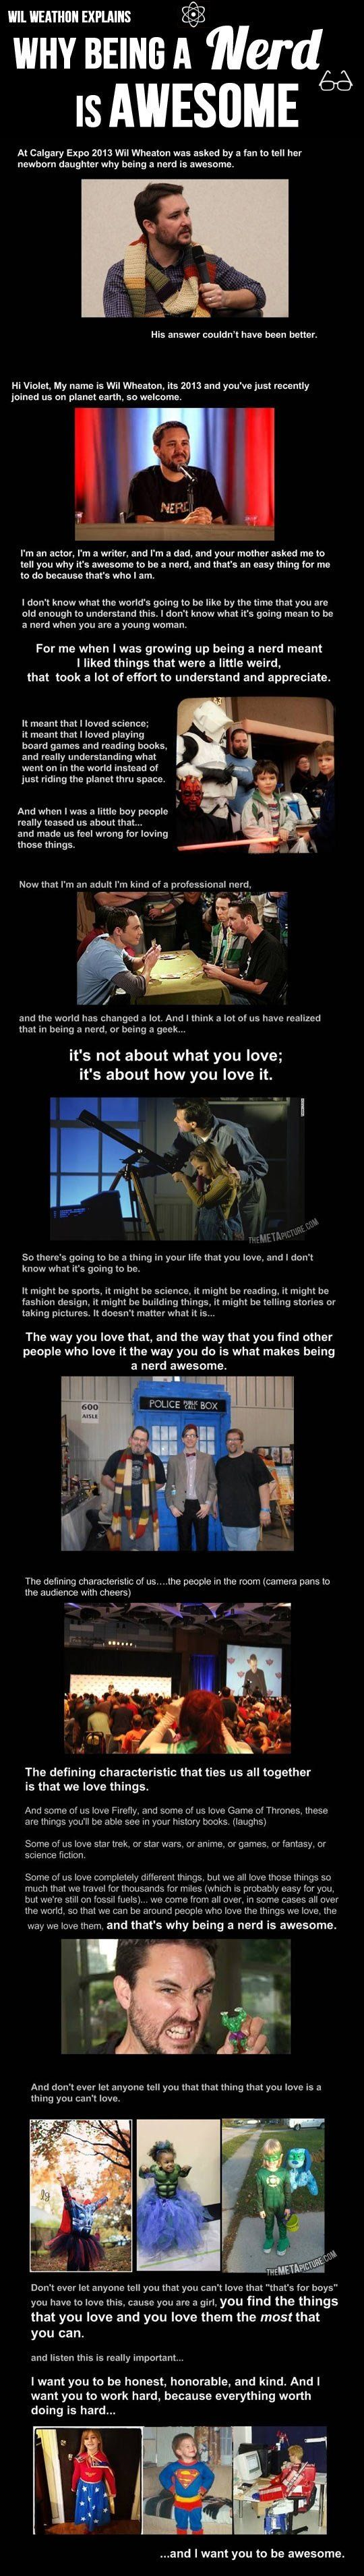 Wil Wheaton explains why being a nerd is awesome… I will show my kids this some day...